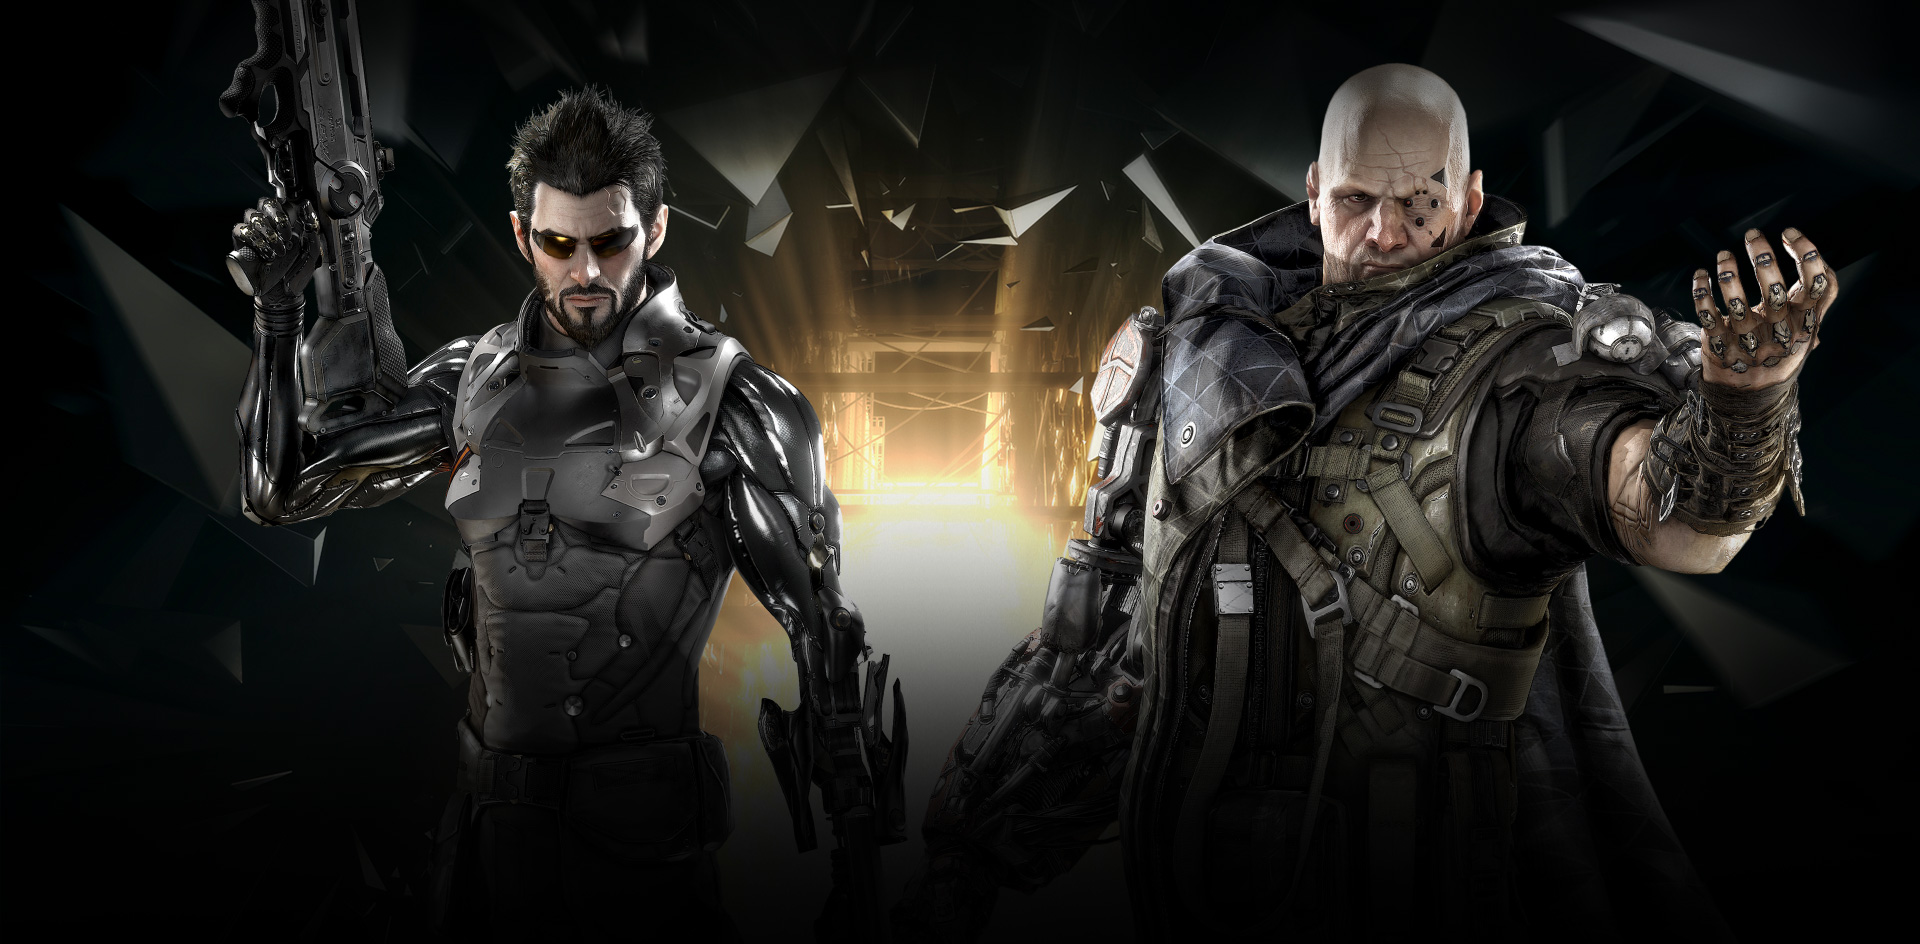 Play the mechanically augmented and highly experienced covert operative Adam Jensen